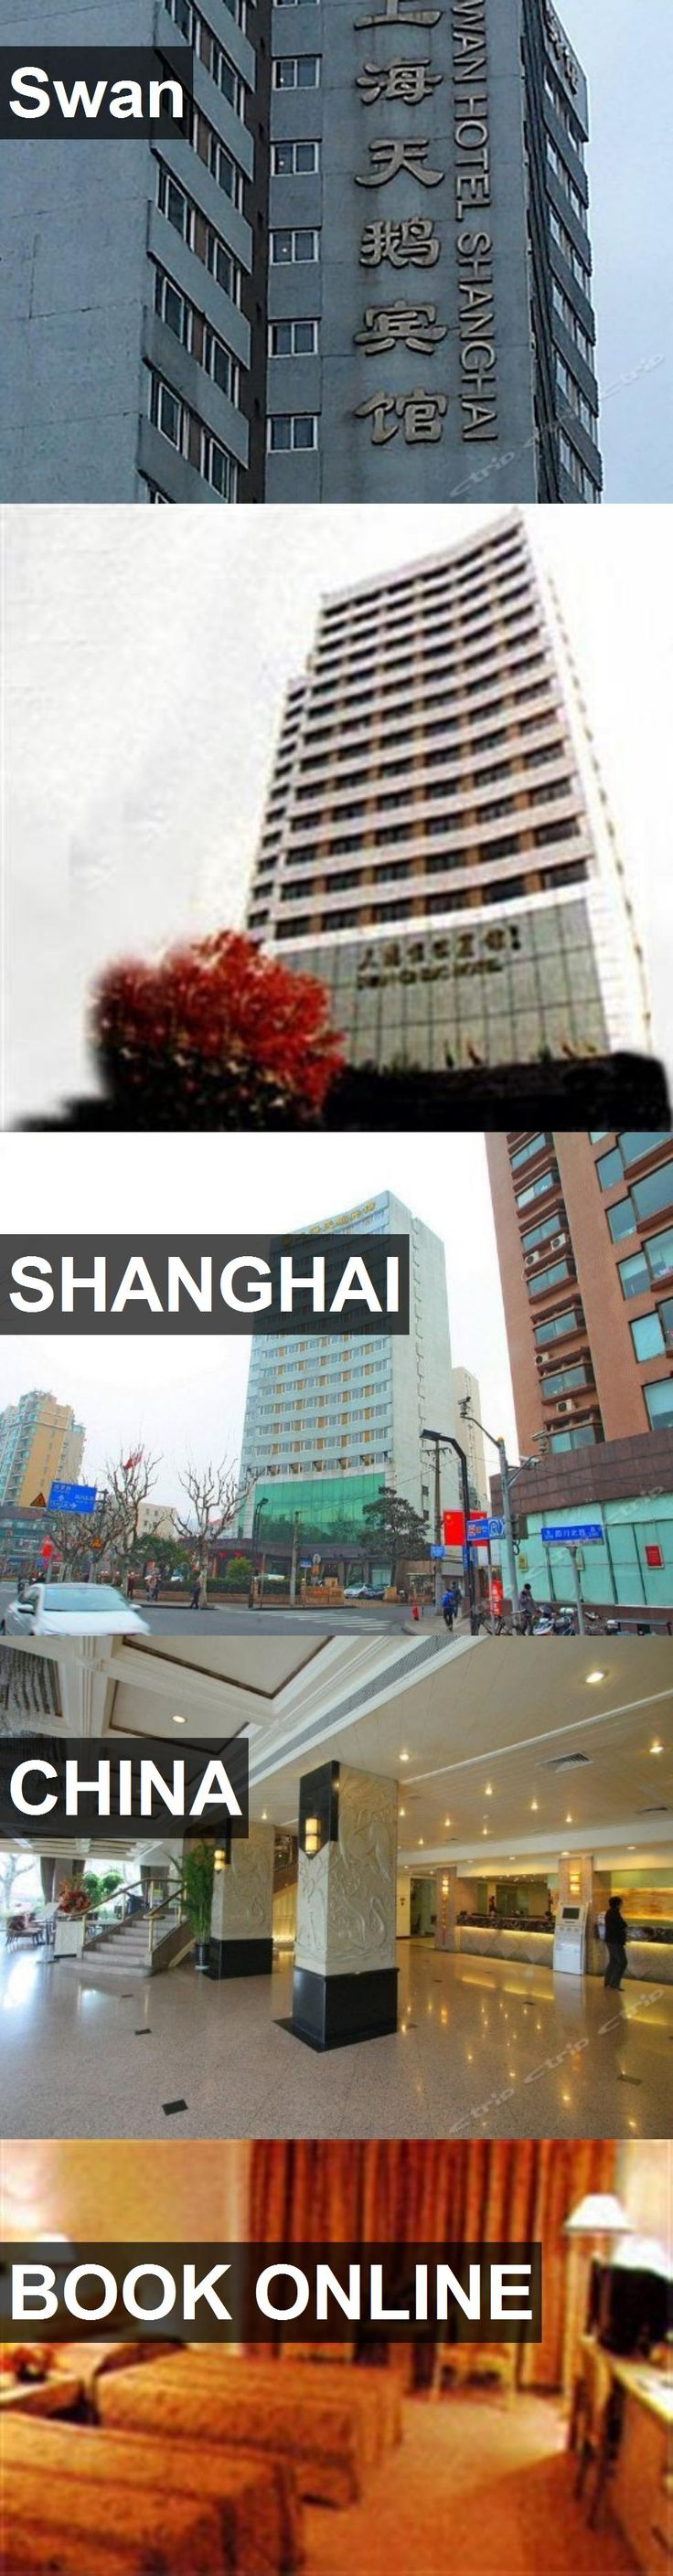 Hotel Swan in Shanghai, China. For more information, photos, reviews and best prices please follow the link. #China #Shanghai #travel #vacation #hotel